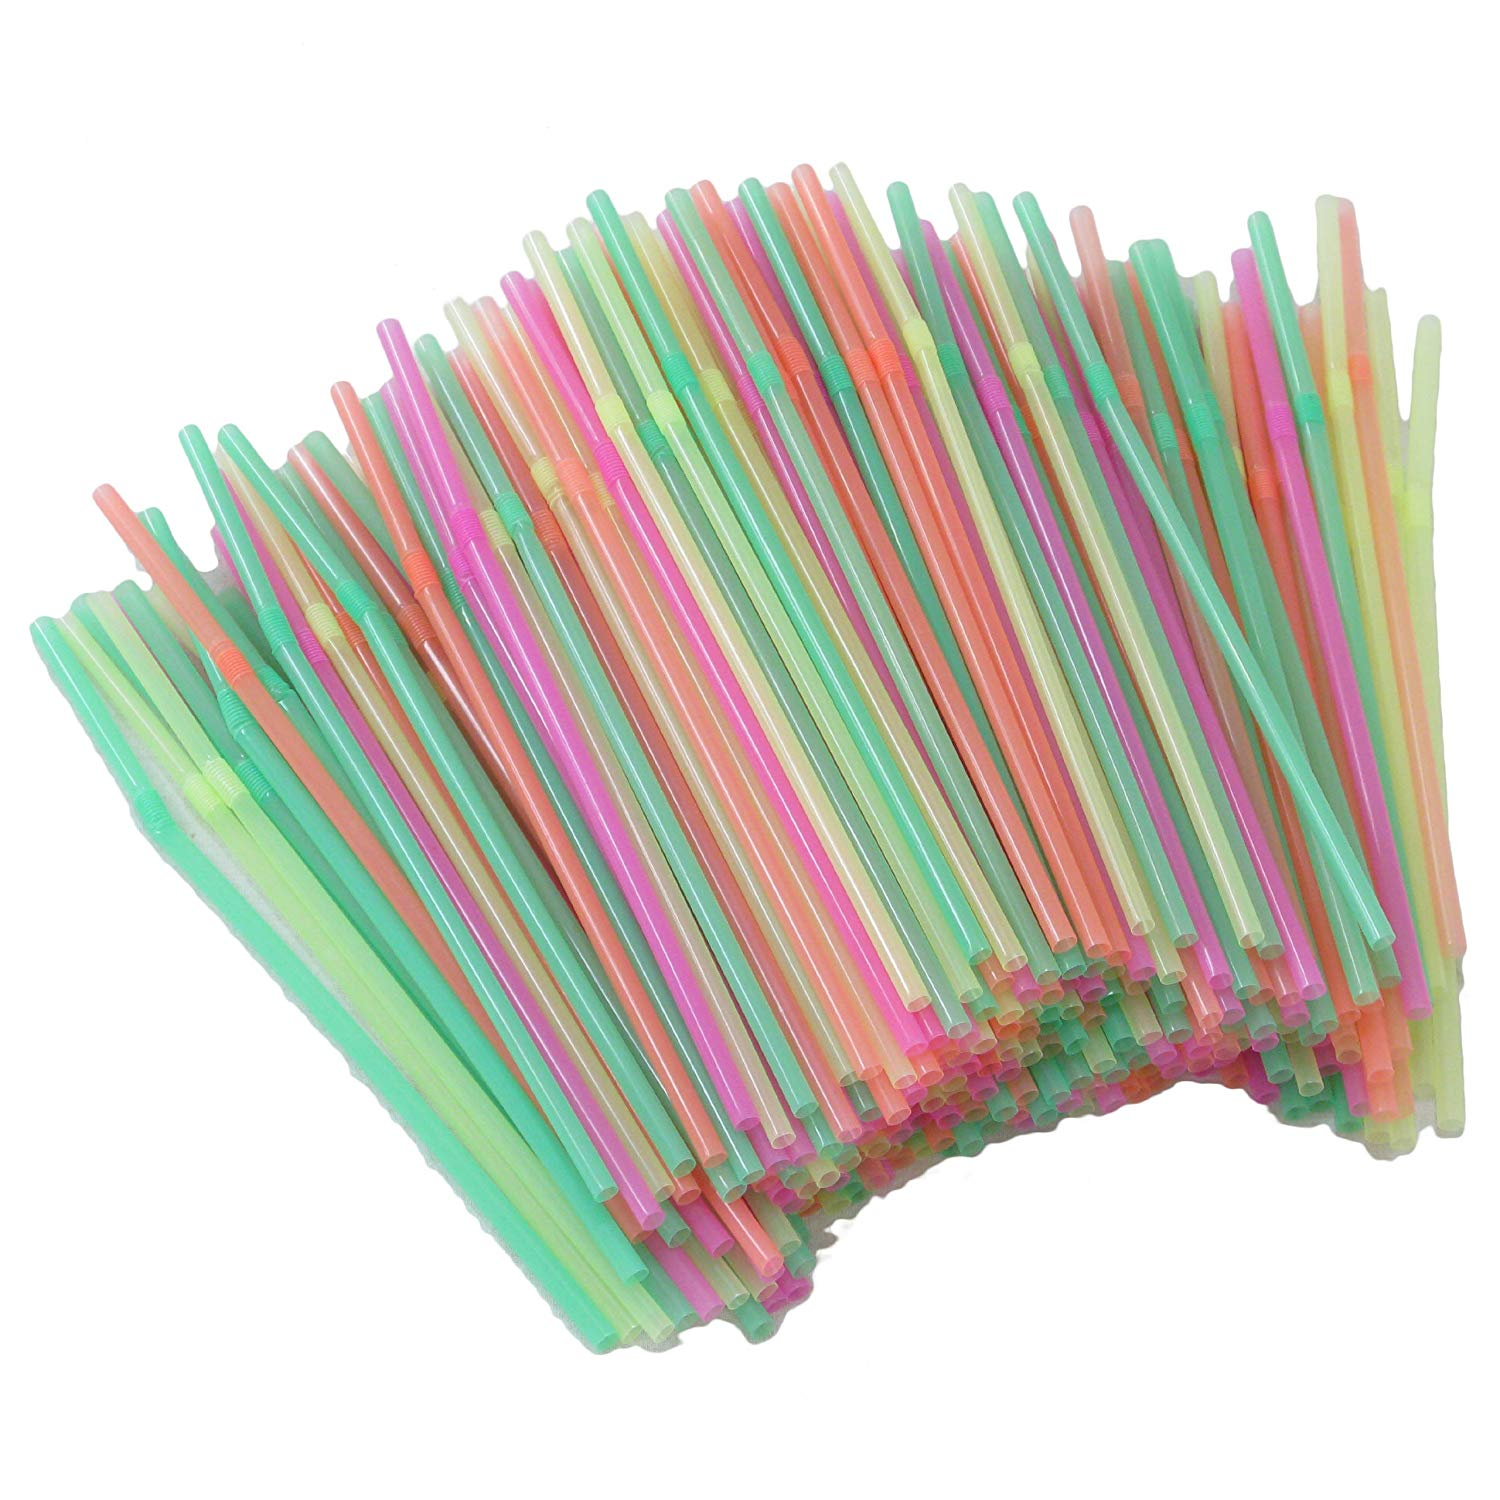 225 multi-coloured flexible plastic drinking straws: Amazon.co.uk ...